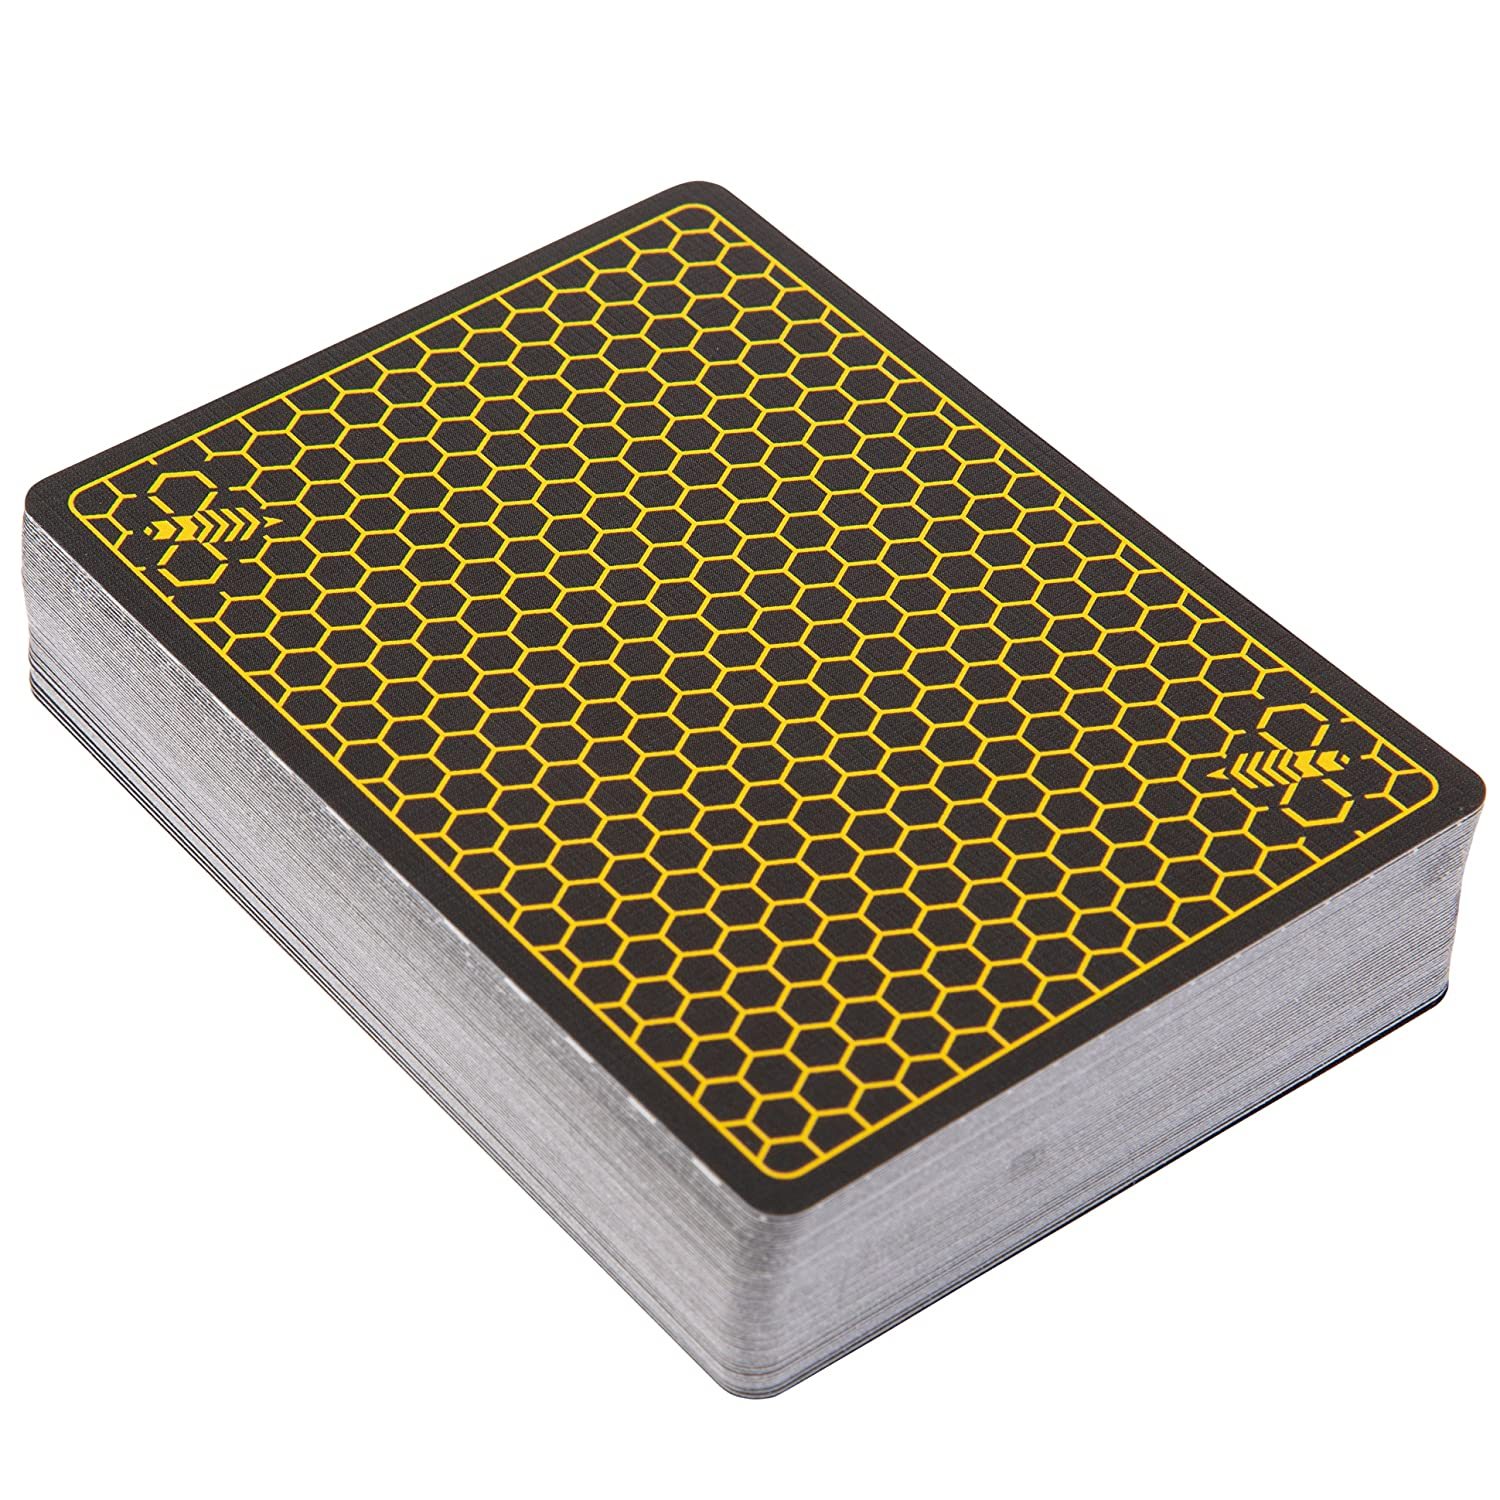 No Tuck Deck Boxless Ellusionist Killer Bees Reloads Playing Card Deck